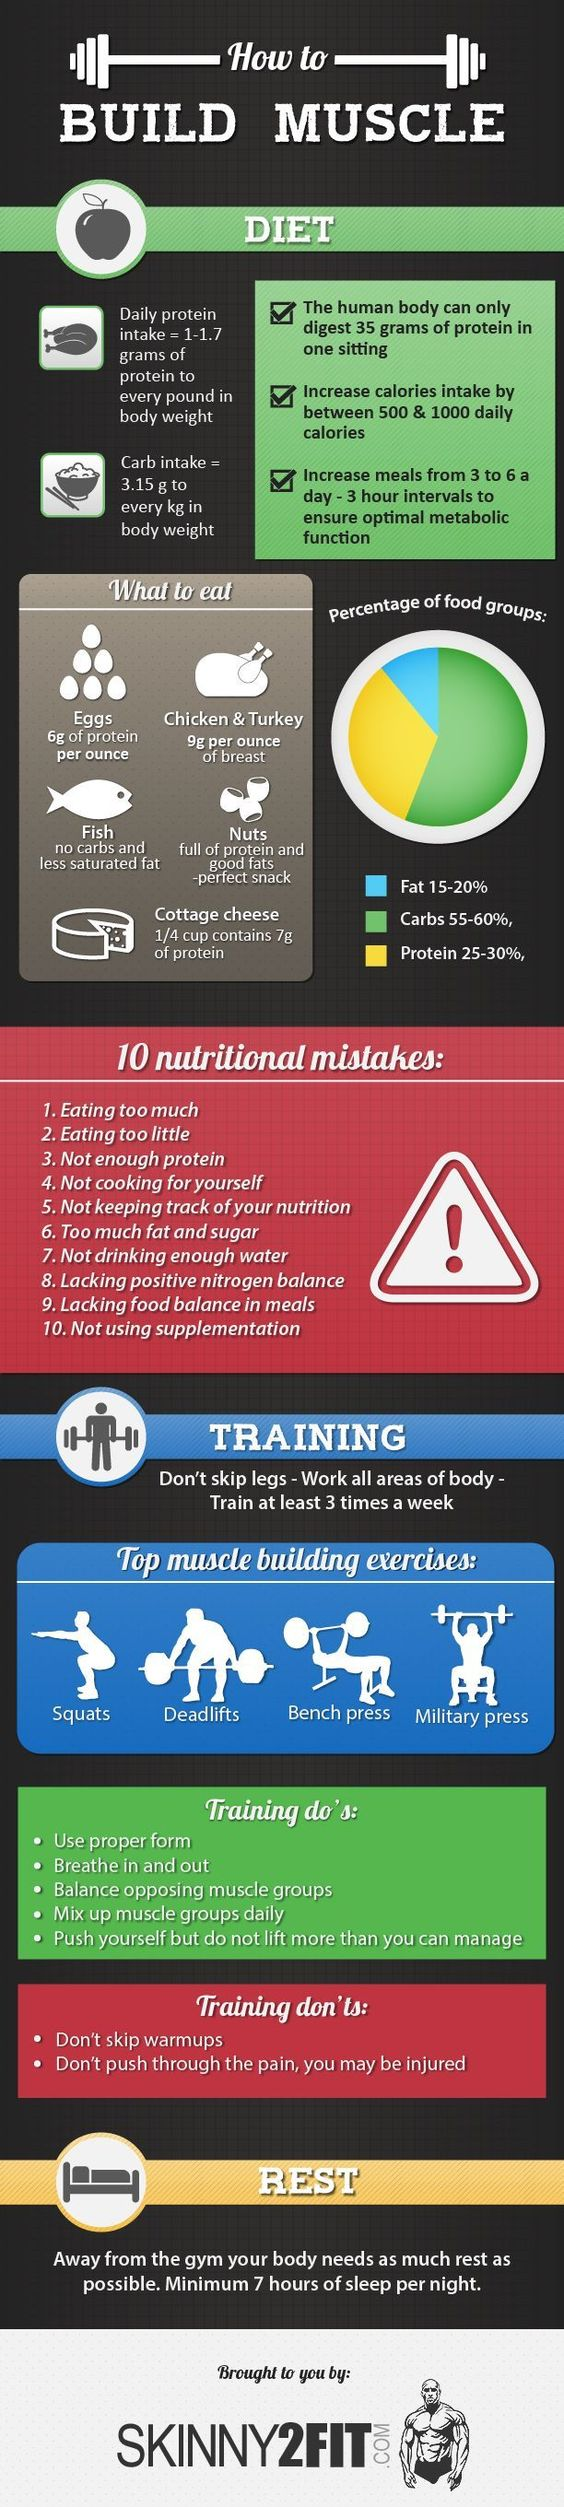 Best Way To Build Muscle